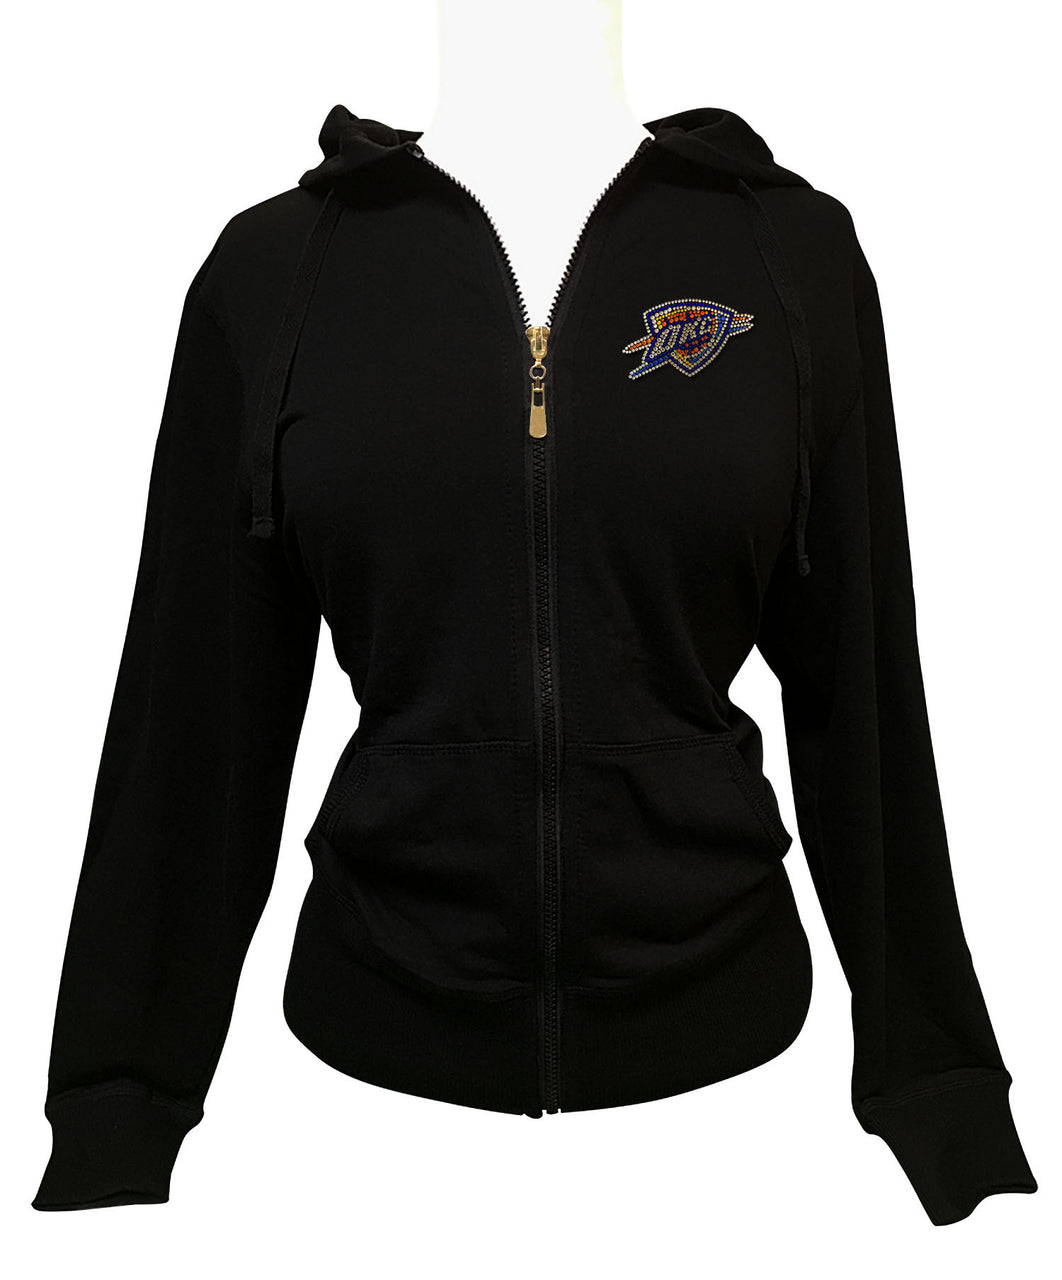 Official Oklahoma City Thunder Rhinestone Hoodie